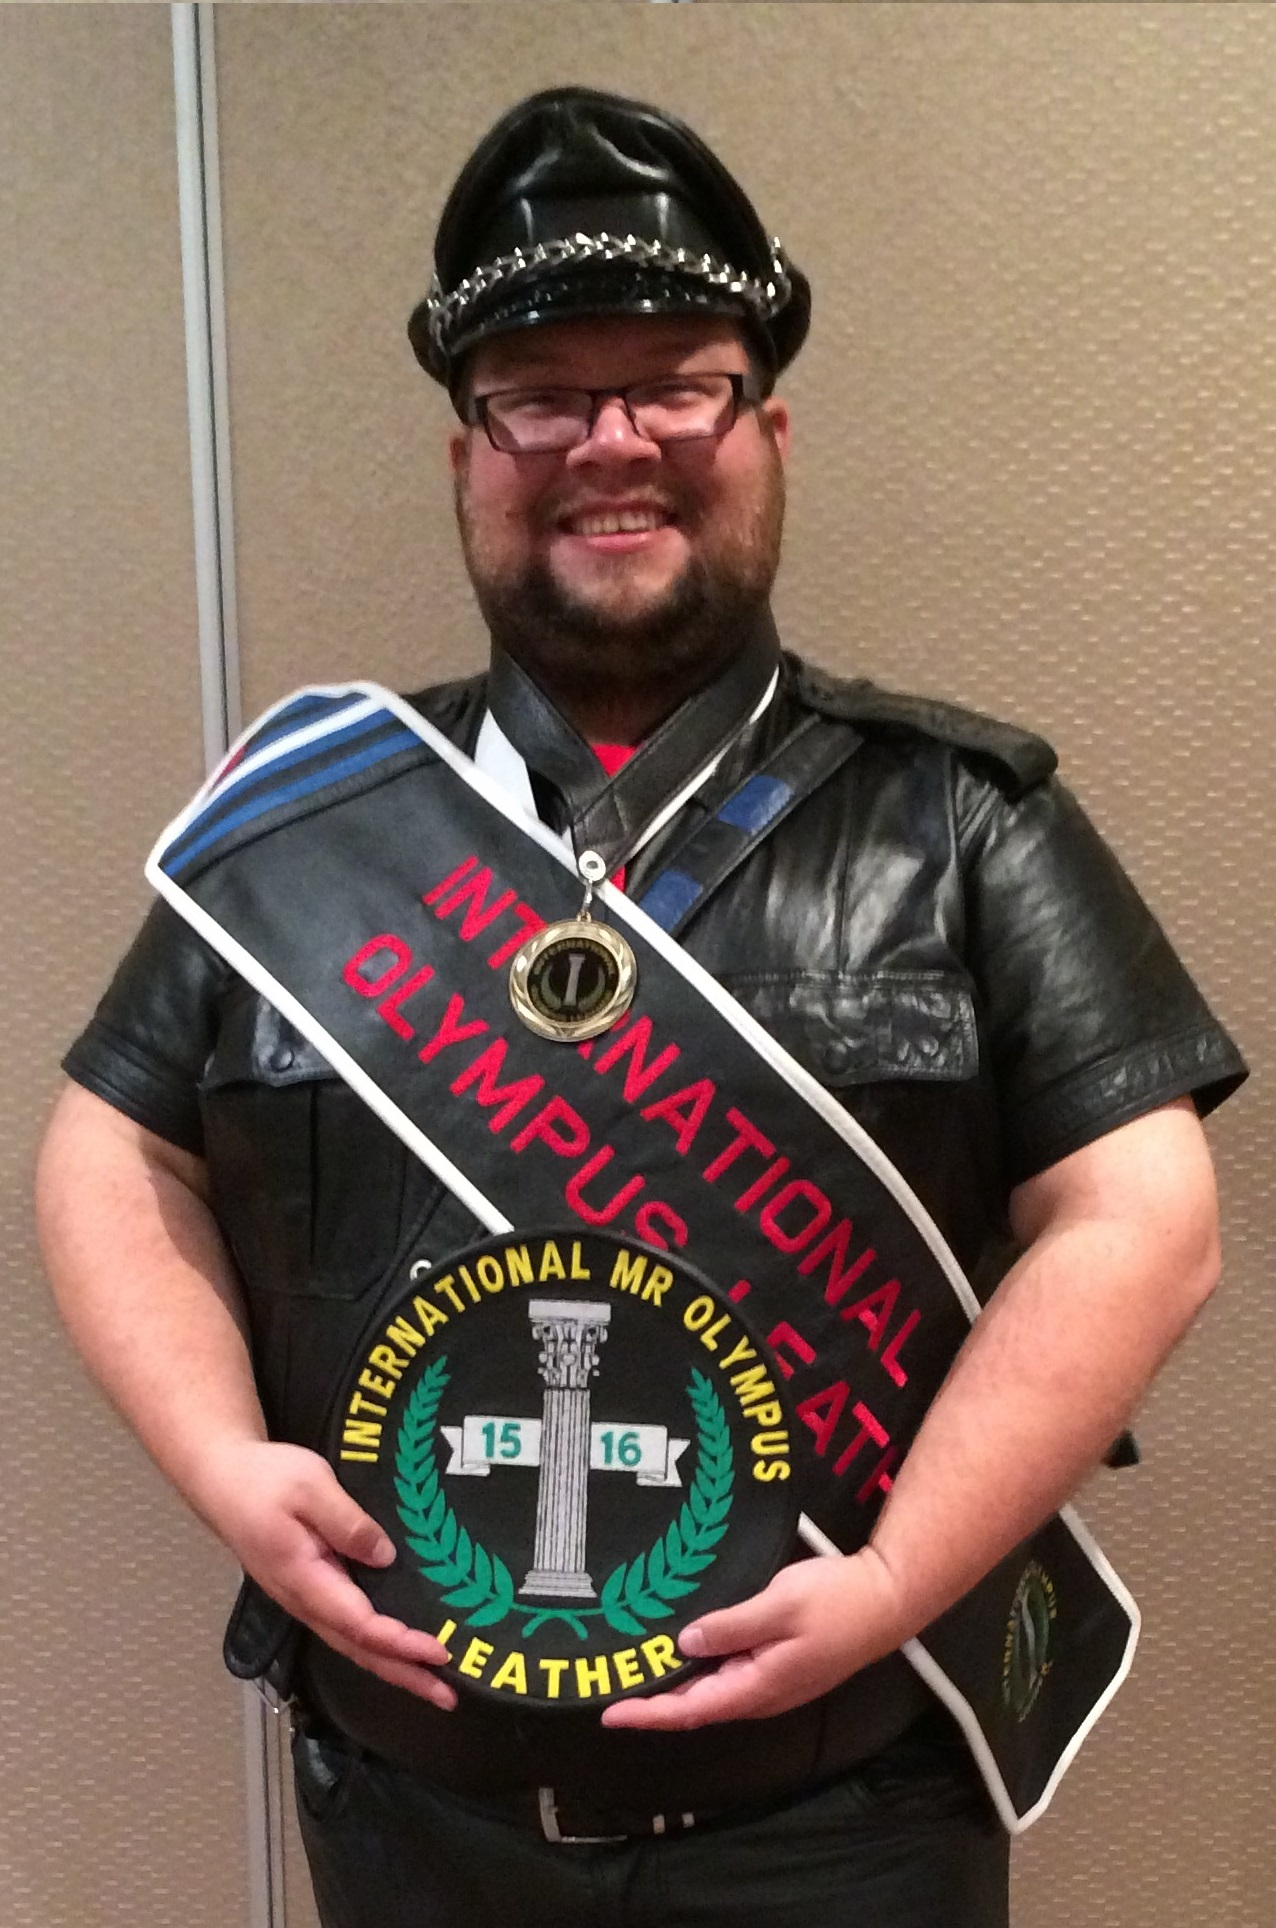 2015 International Mr. Olympus Leather Fred Anderson